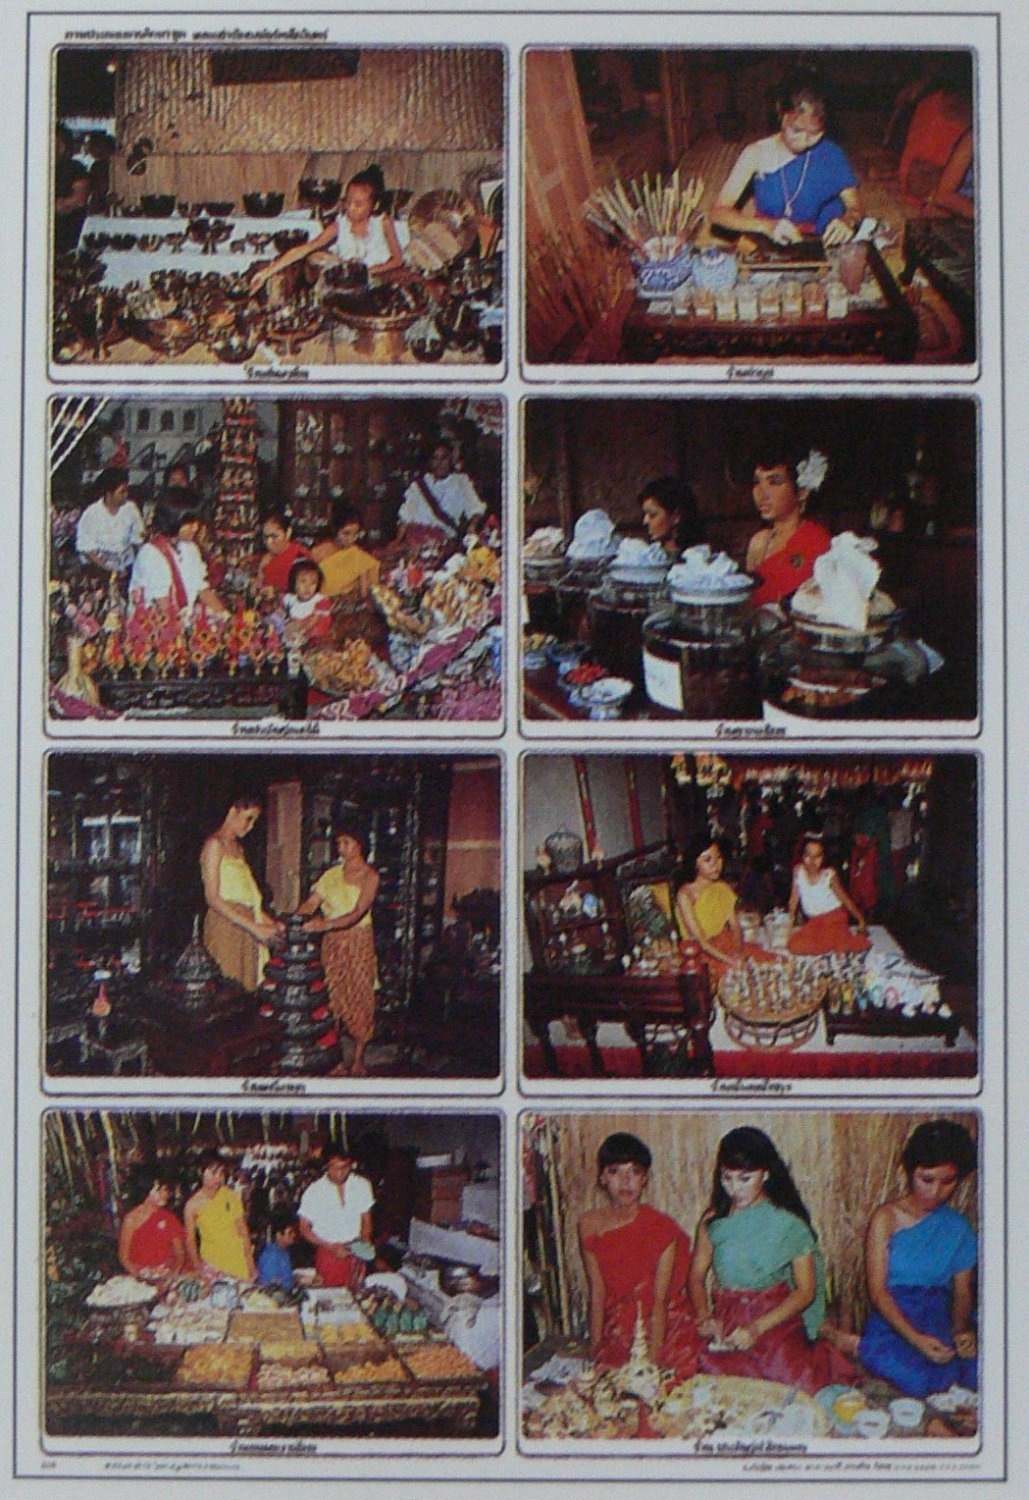 Thailand Thai Poster Collection Ancient Old Tradition Traditional Shop Education Christmas Gift